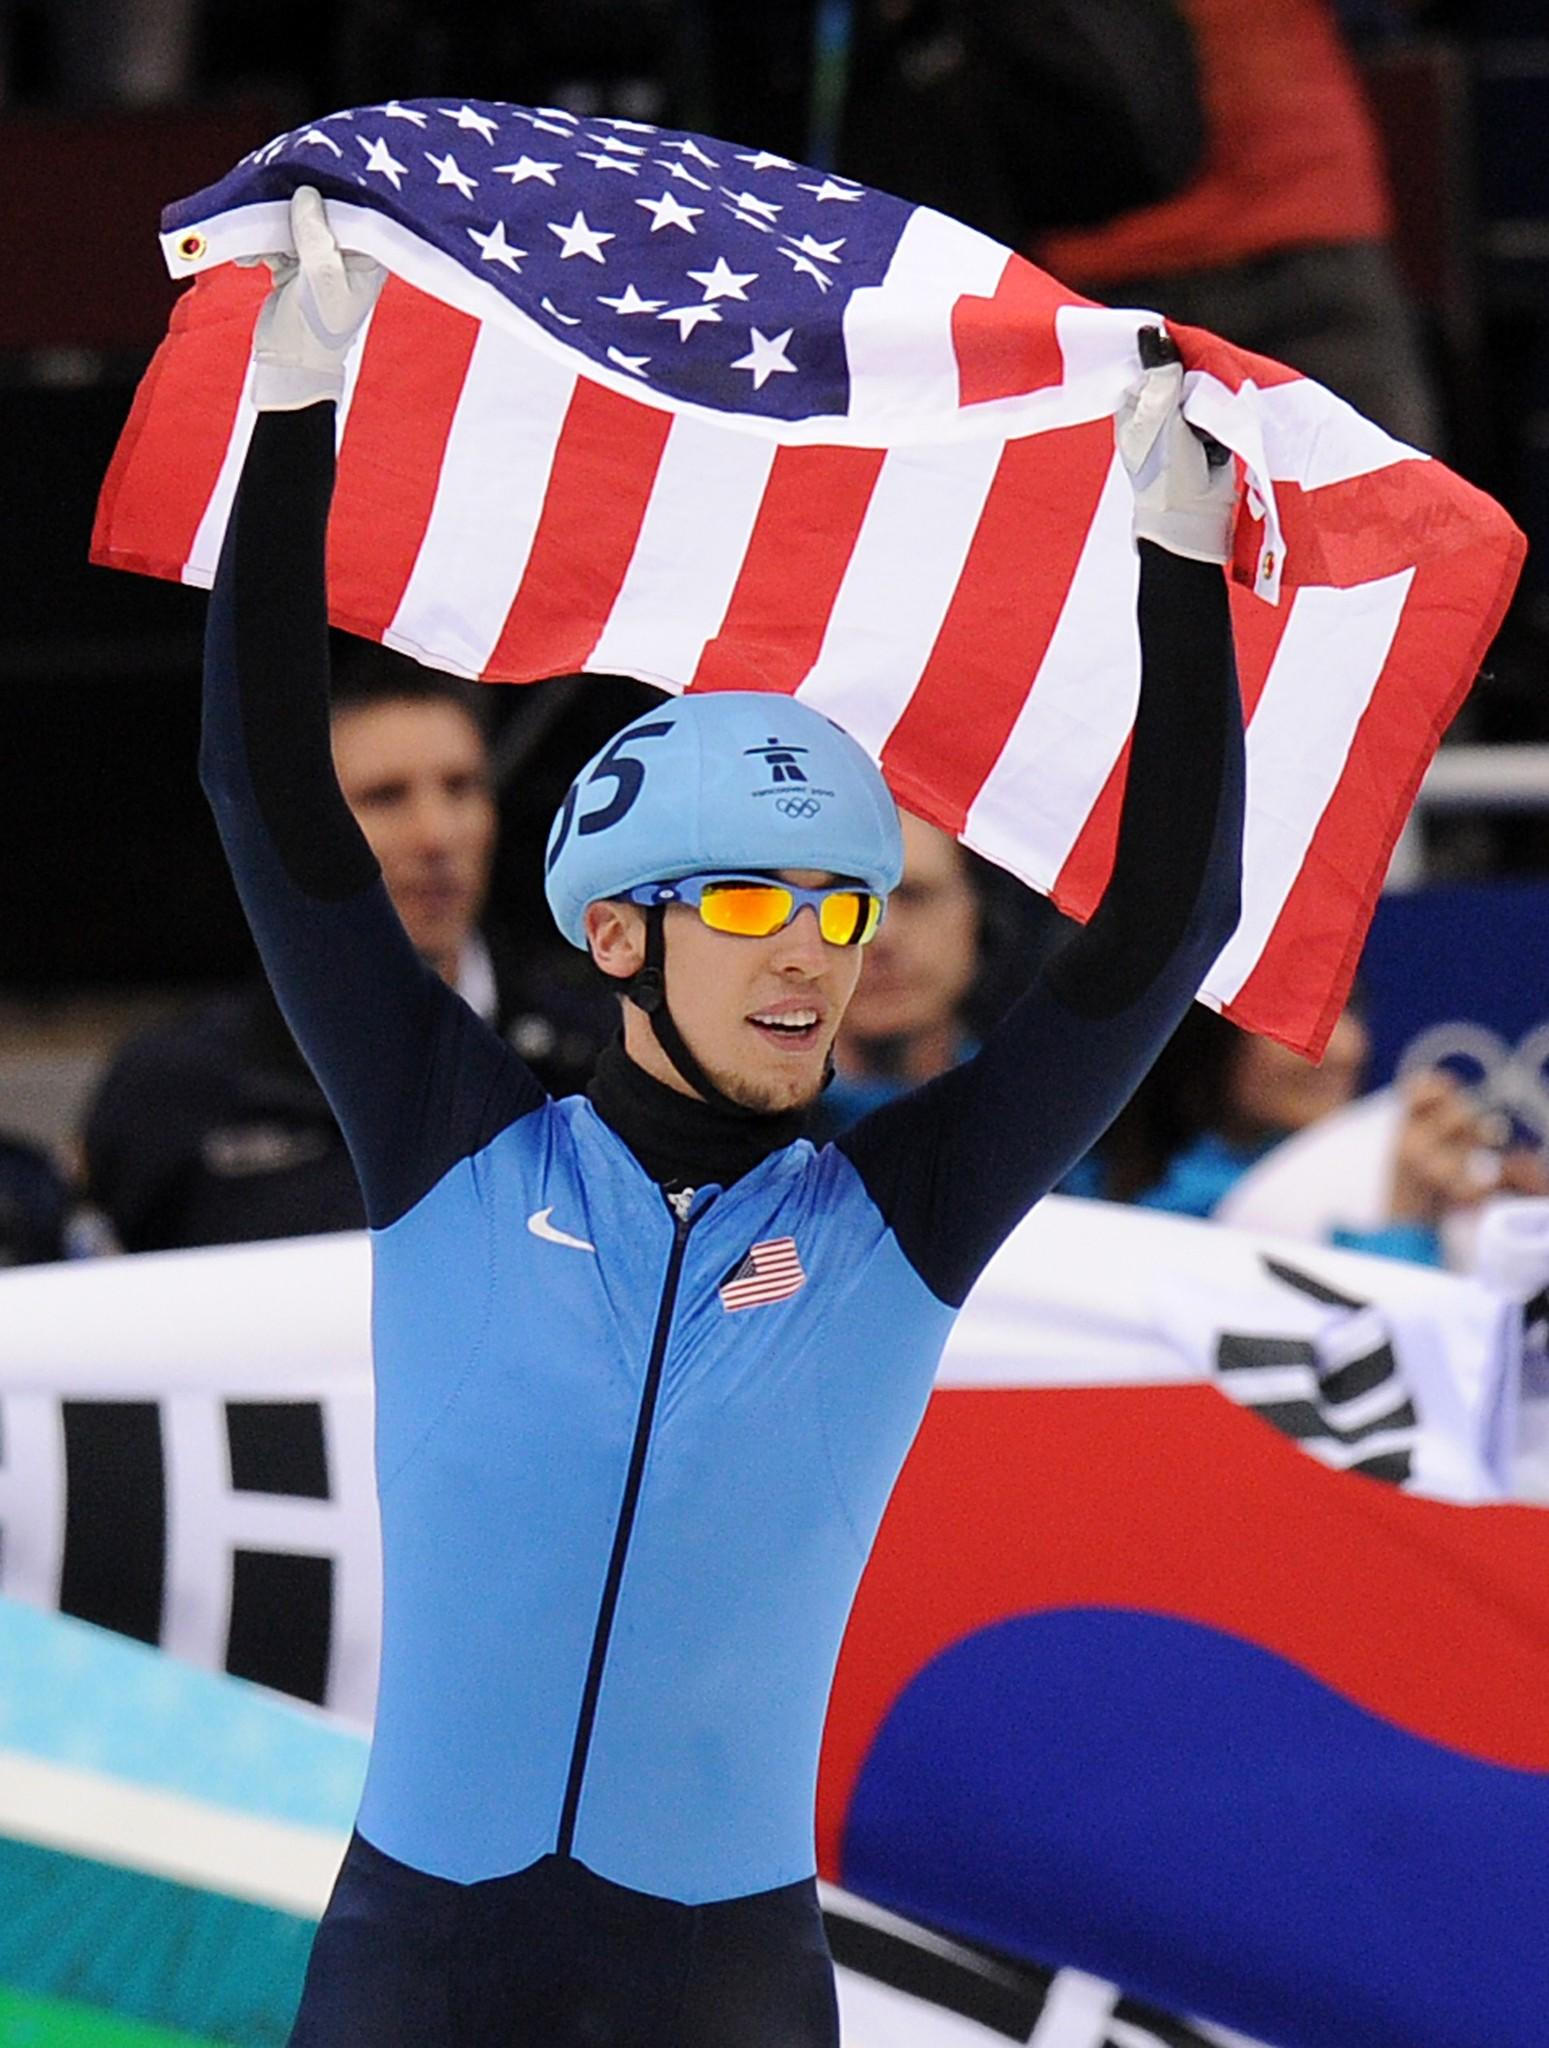 Jordan Malone celebrates with his country's flag at the end a race. (Yuri Kadobnov/Getty Photo)